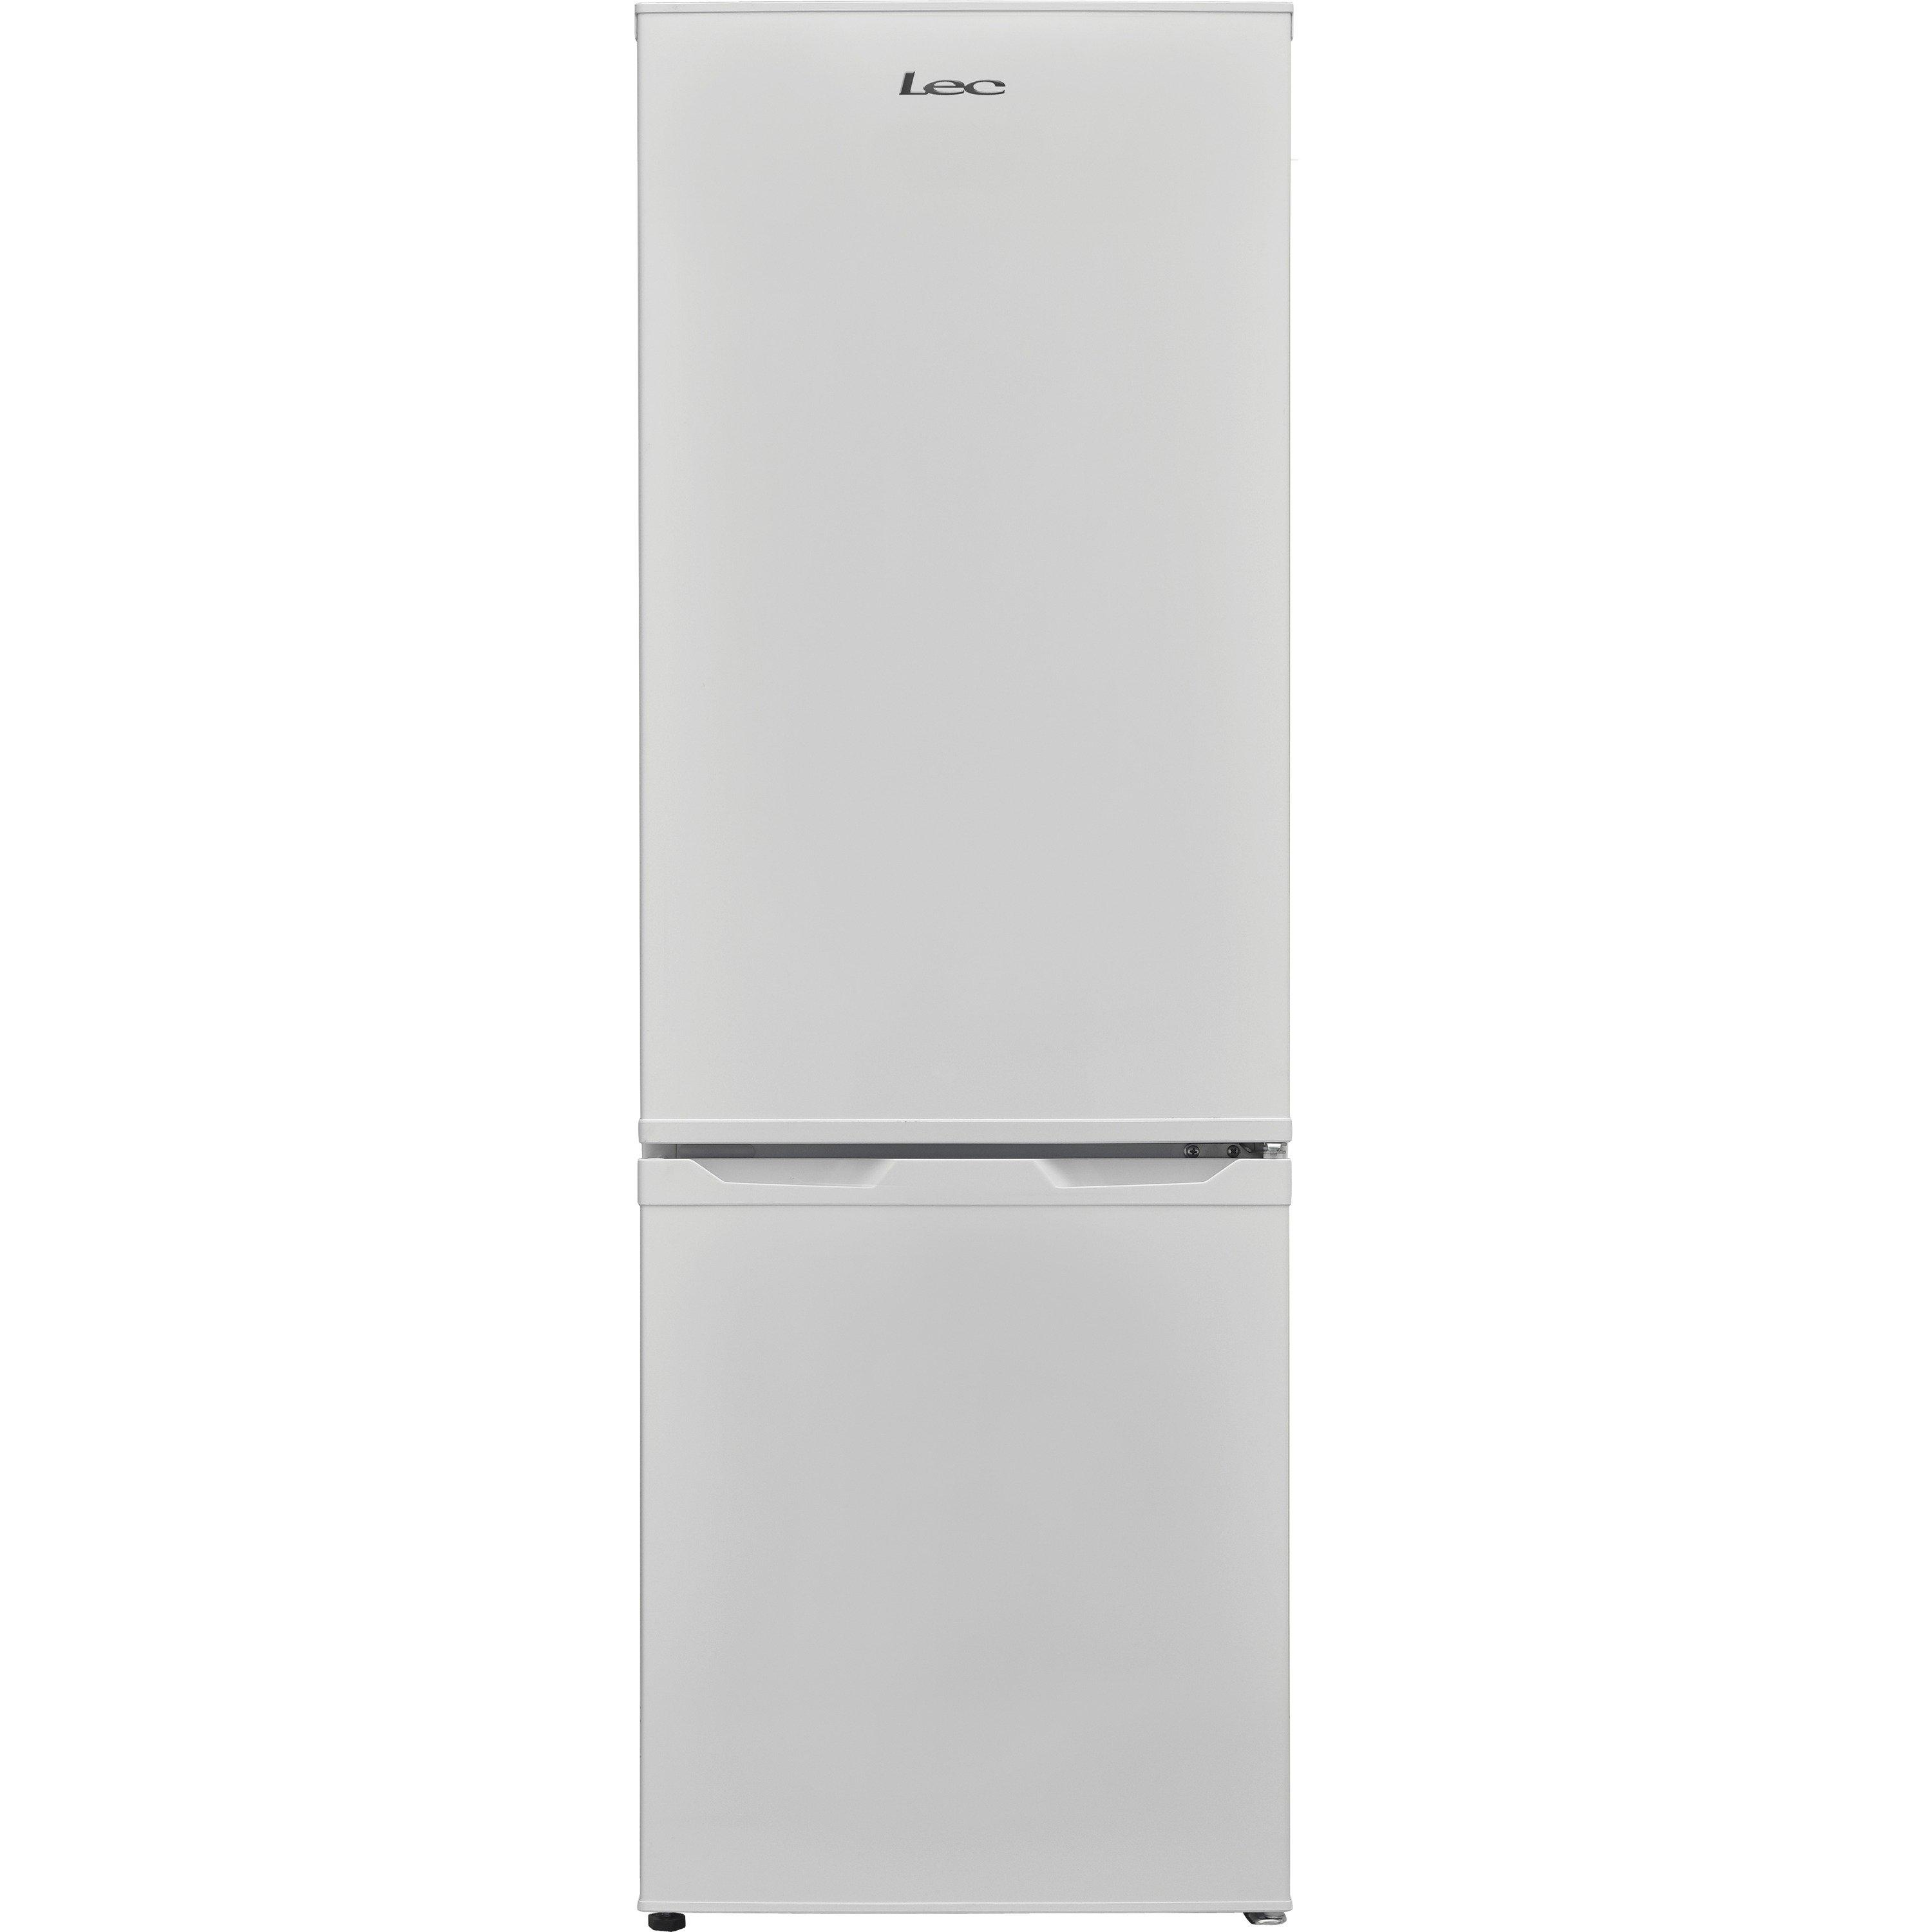 Fridge Freezer Lec Tfl55148w 60 40 Low Frost Fridge Freezer White A Rated